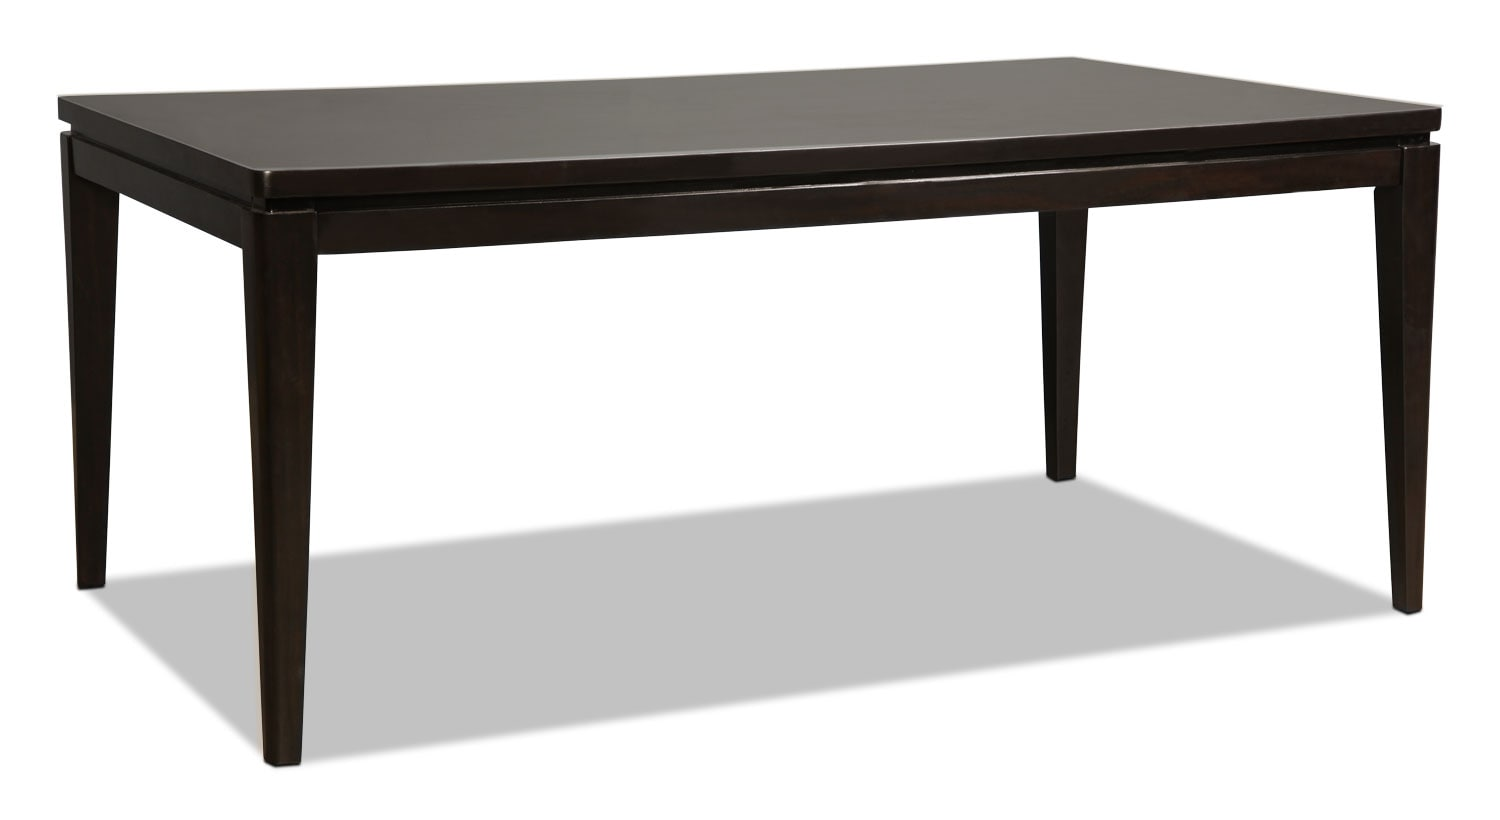 Grayson Dining Table - Merlot